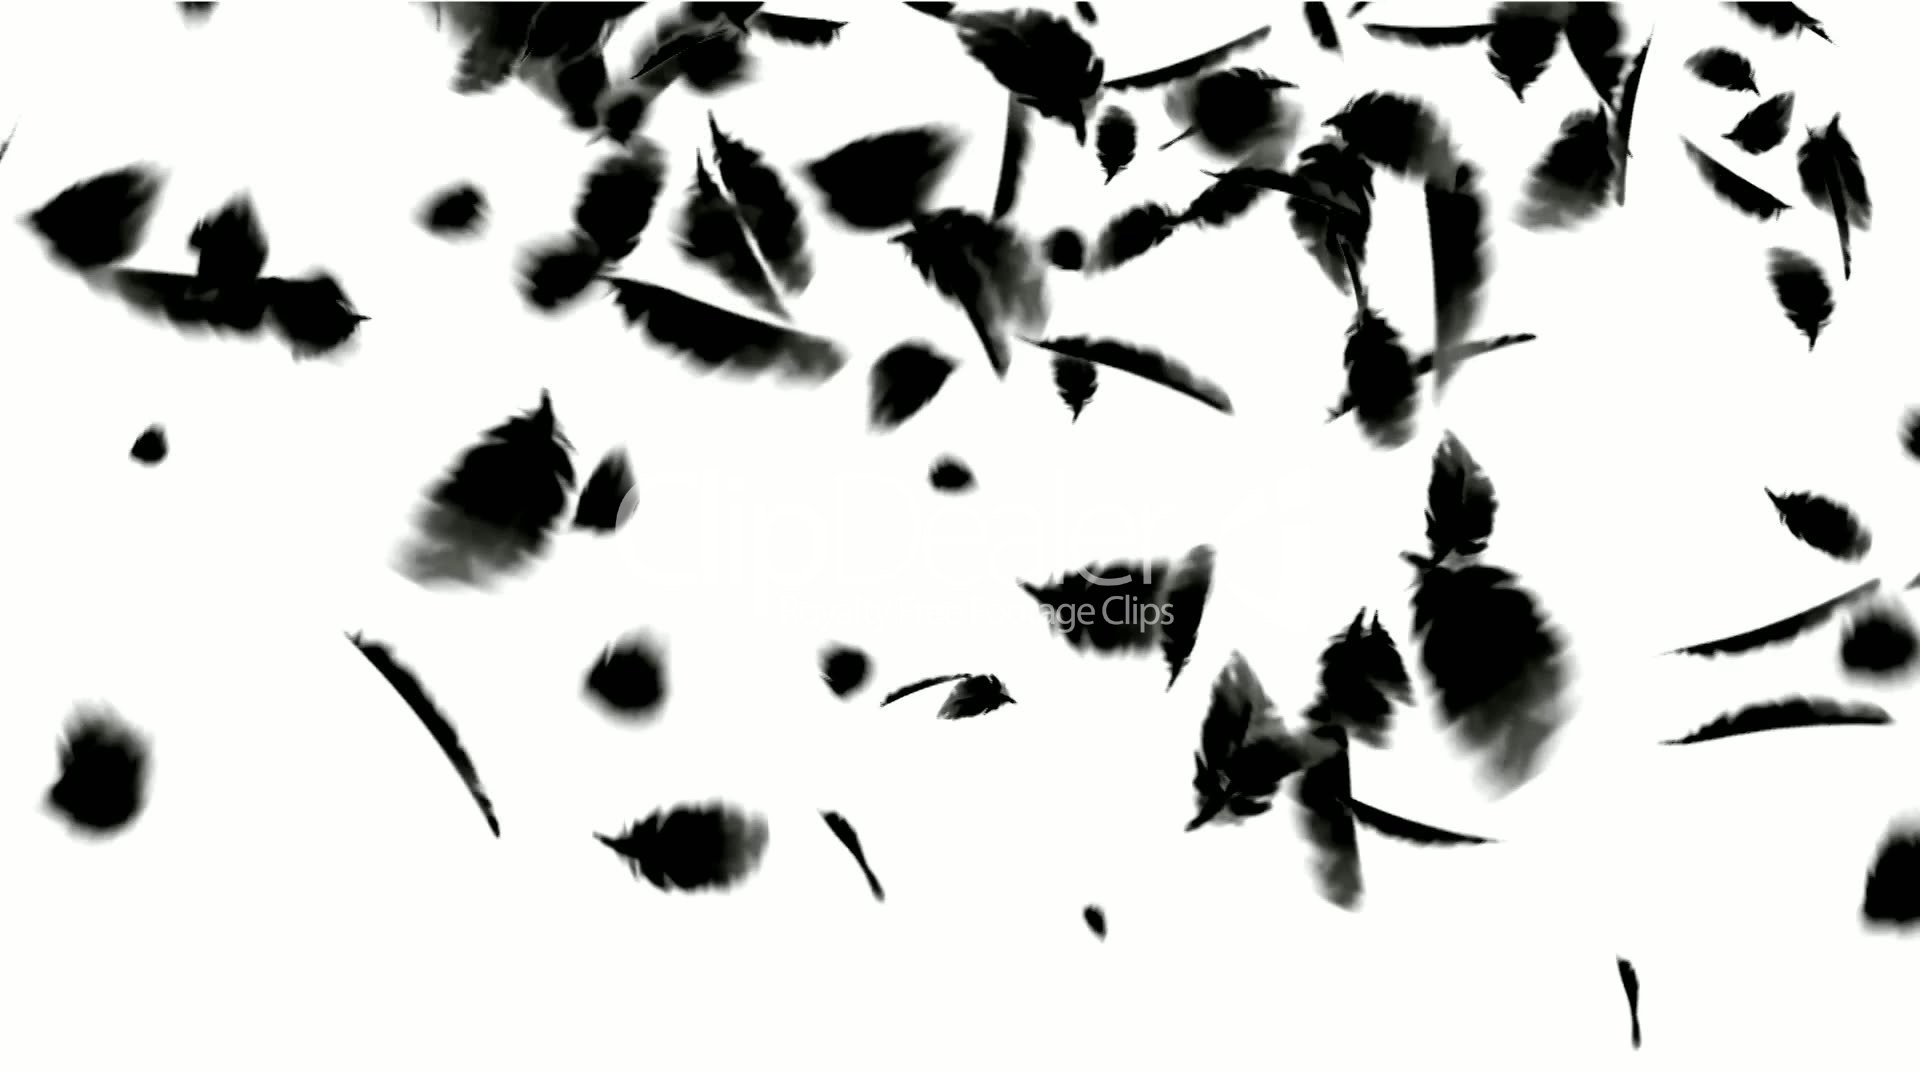 Falling Feathers Wallpaper Black Bird Feathers Falling Feathers Fossil Plastic Duck